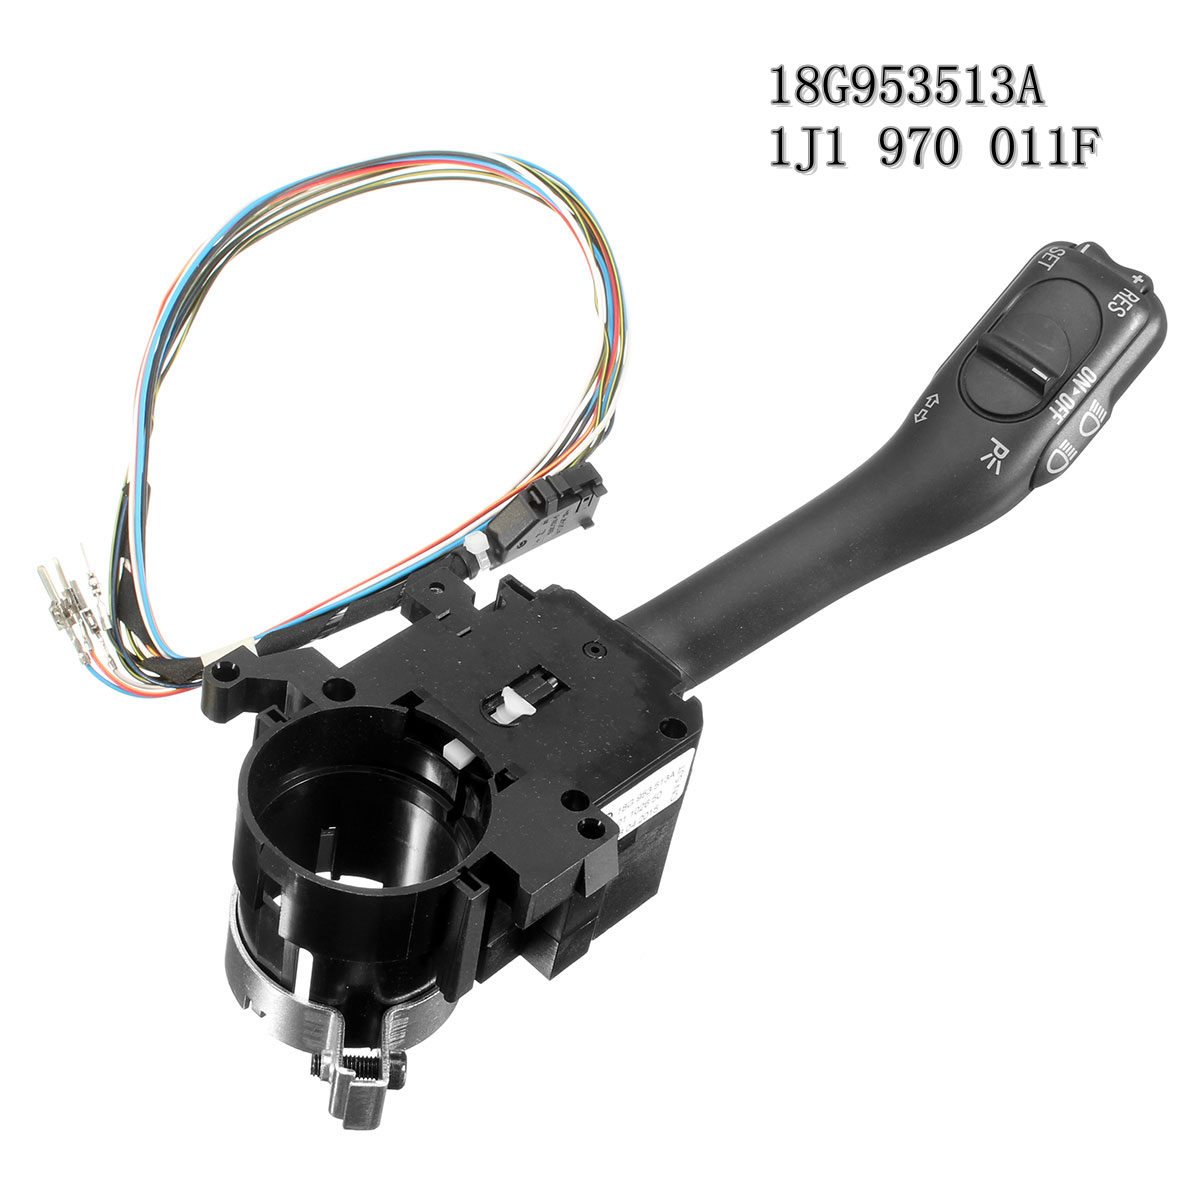 Cruise Control System CCS Stalk Streering Wheel Handle 18G953513A Harness 1J1 970 011F For VW Golf 4 Jetta MK4 IV Bora for vw golf 4 jetta mk4 cruise control system stalk handle steering switch 18g 953 513 a wire harness connector 1j1 970 011 f